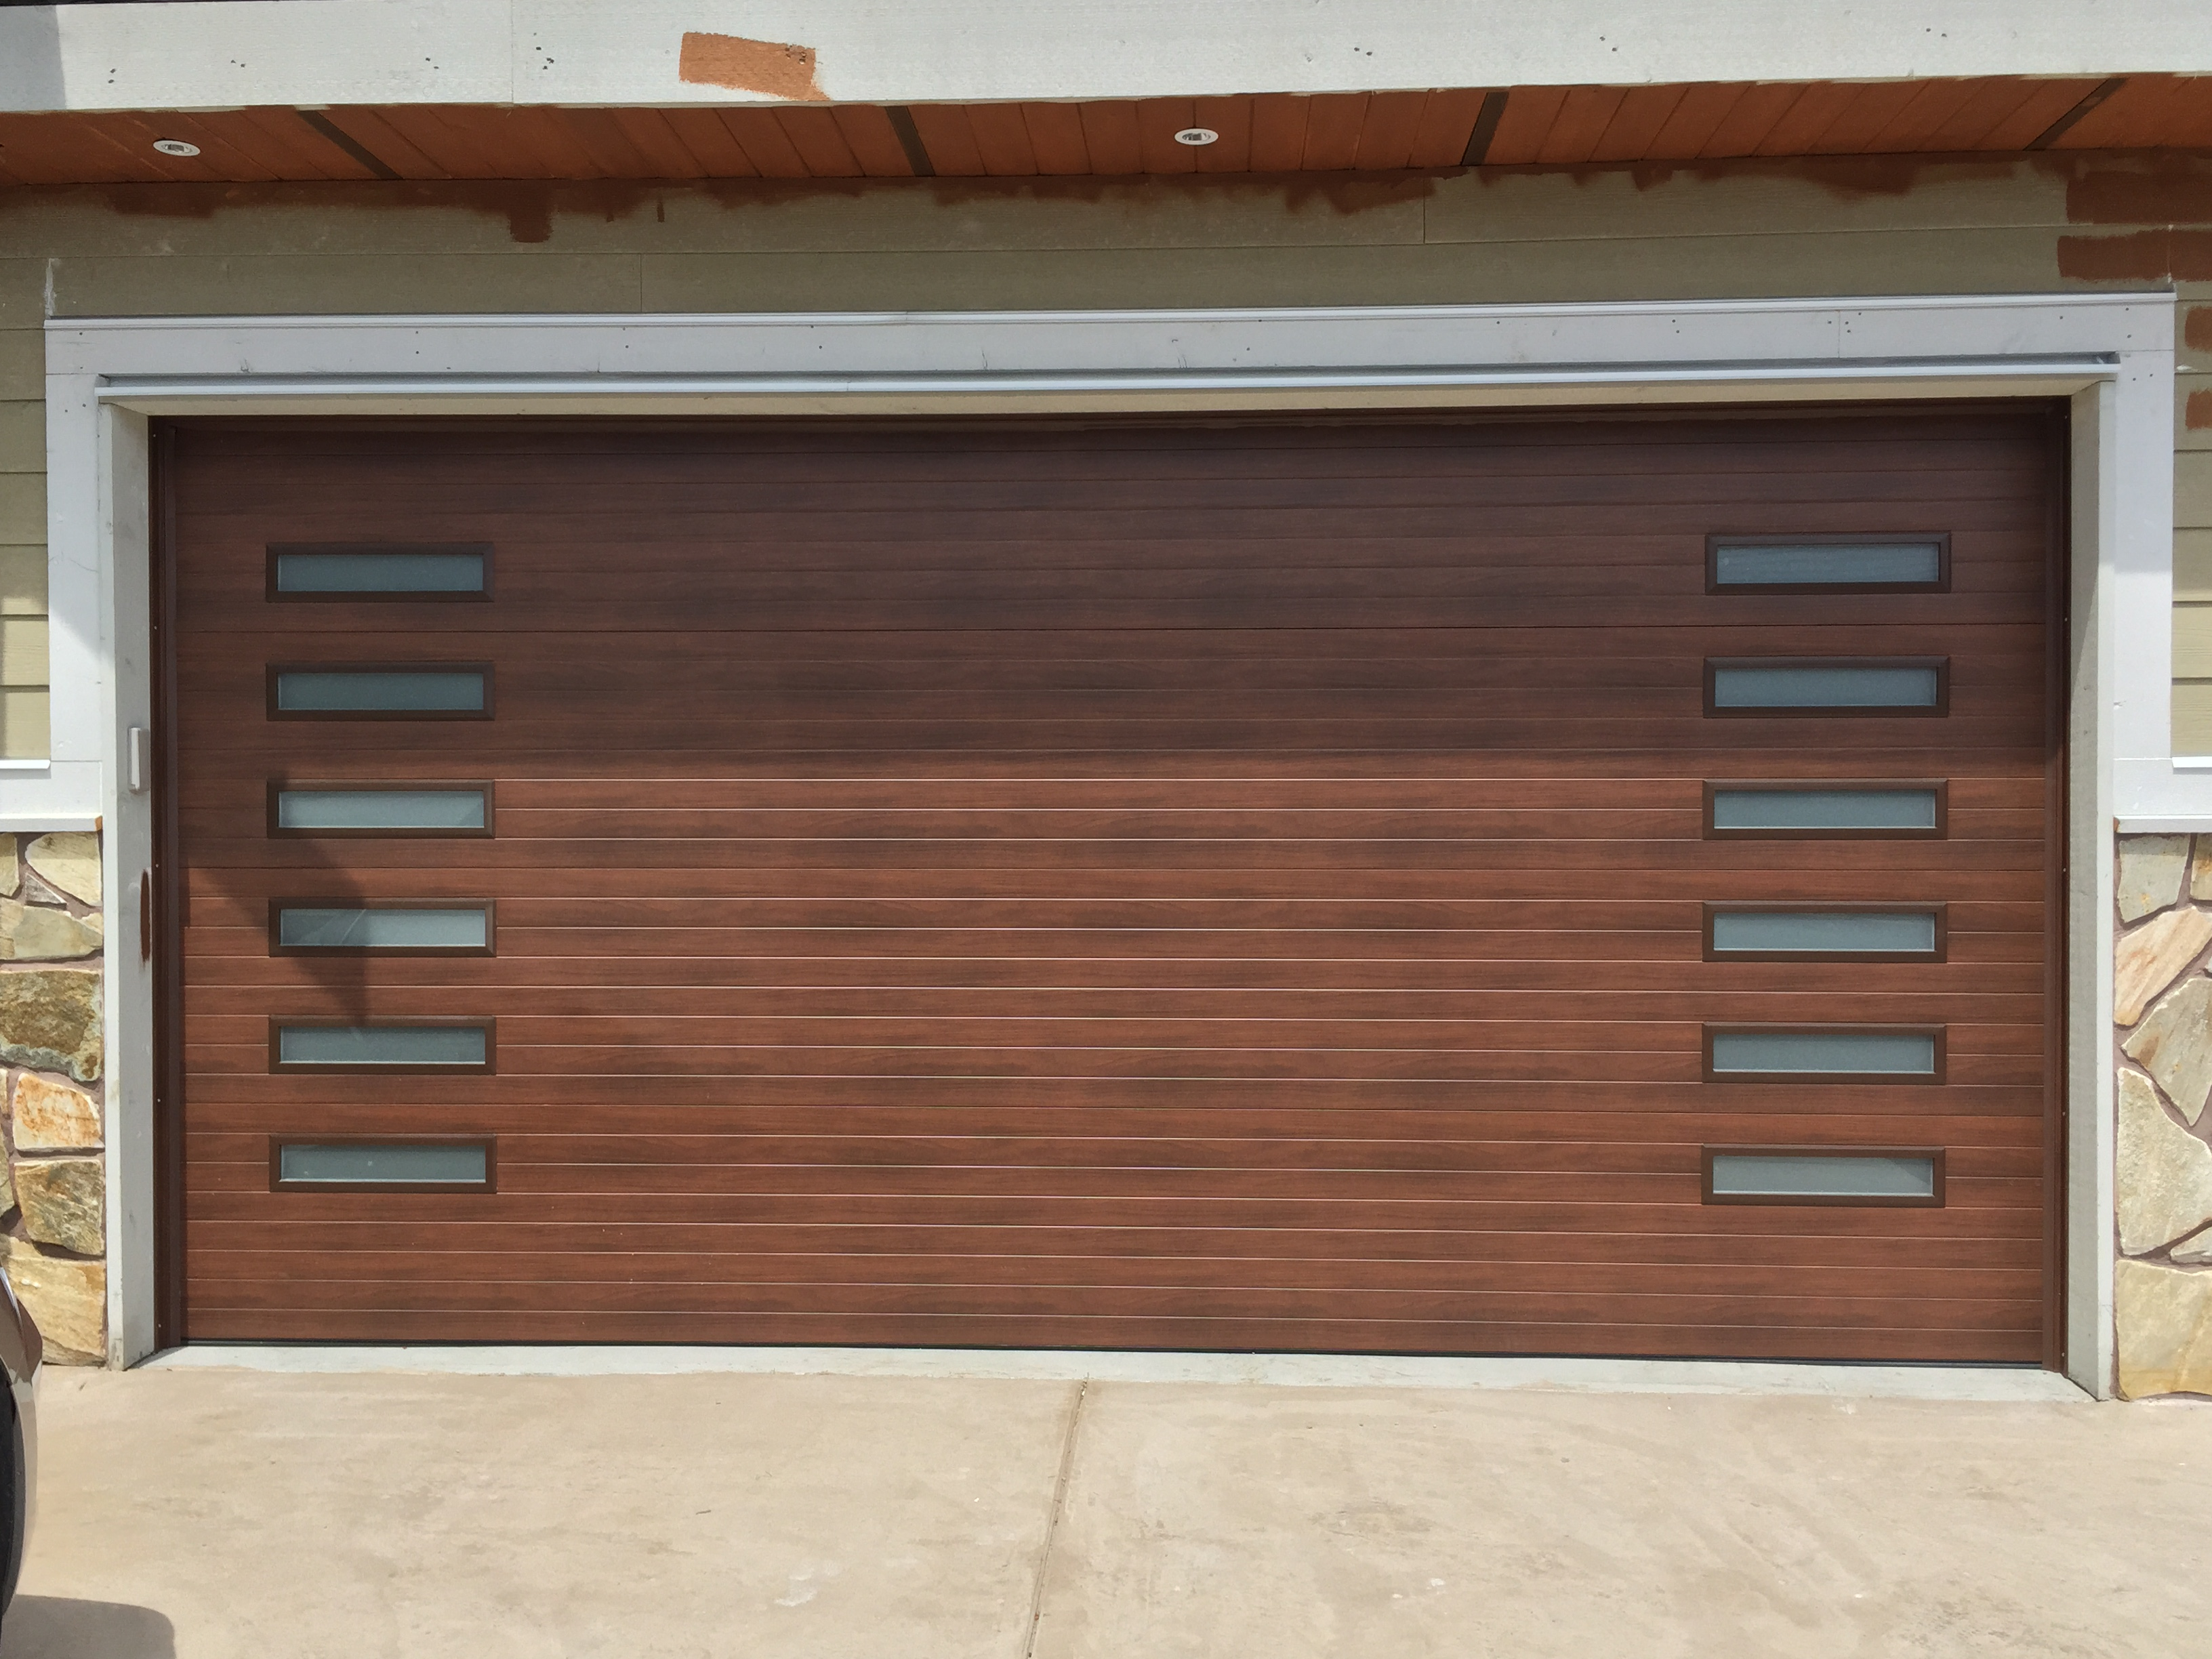 exceptional door from safety beautiful equipped residential free overhead come garage with doors burlington maintenance active